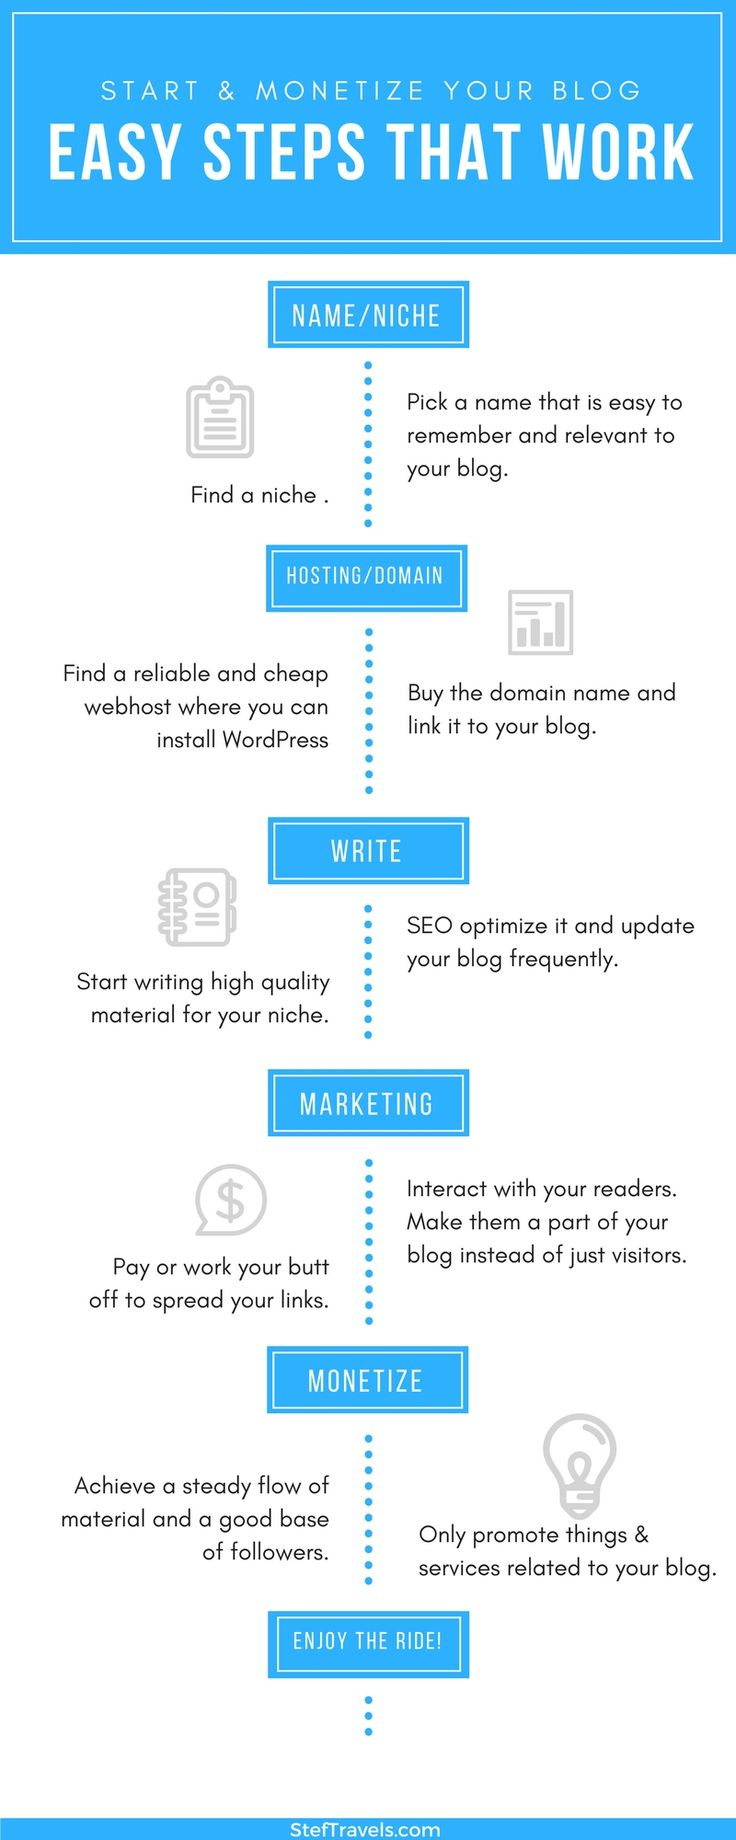 Info graphic related to the post: http://steftravels.com/how-to/start-a-travel-blog/ Feel free to check it out for helpful advice when it comes to starting or managing your blog! www.steftravels.com